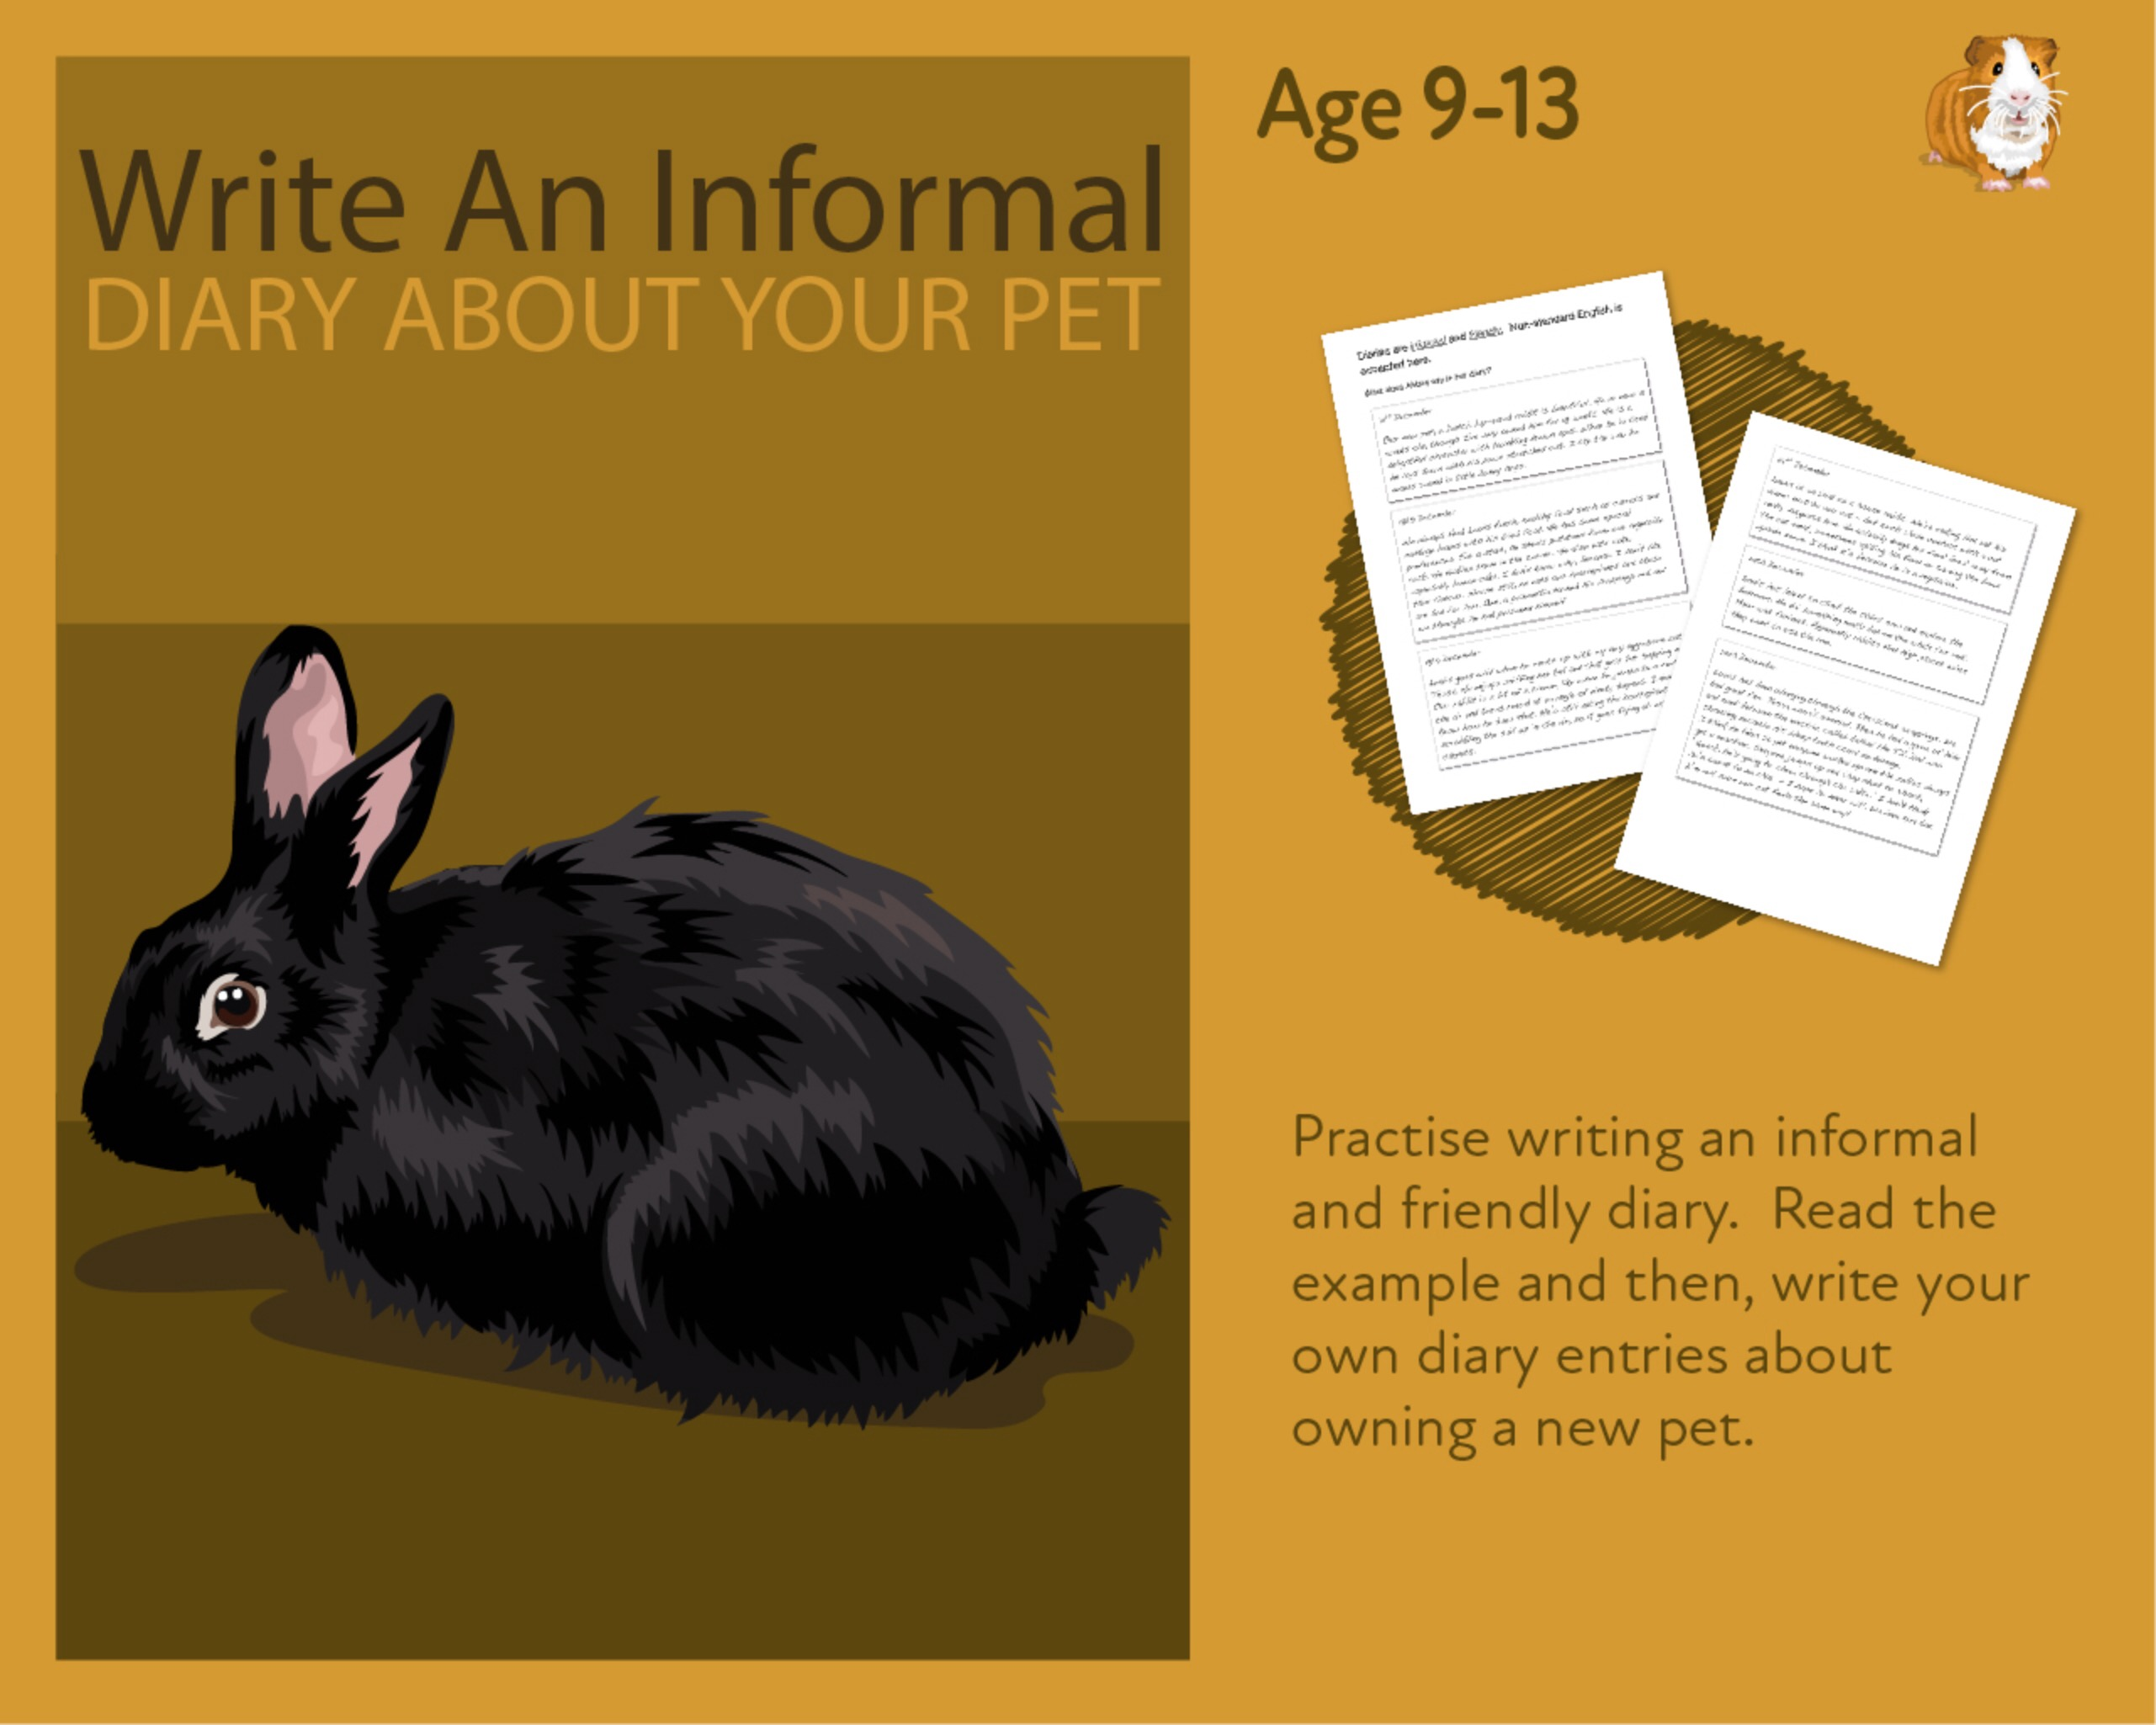 Practise Writing An Informal Diary On Your New Pet (9-14 years)